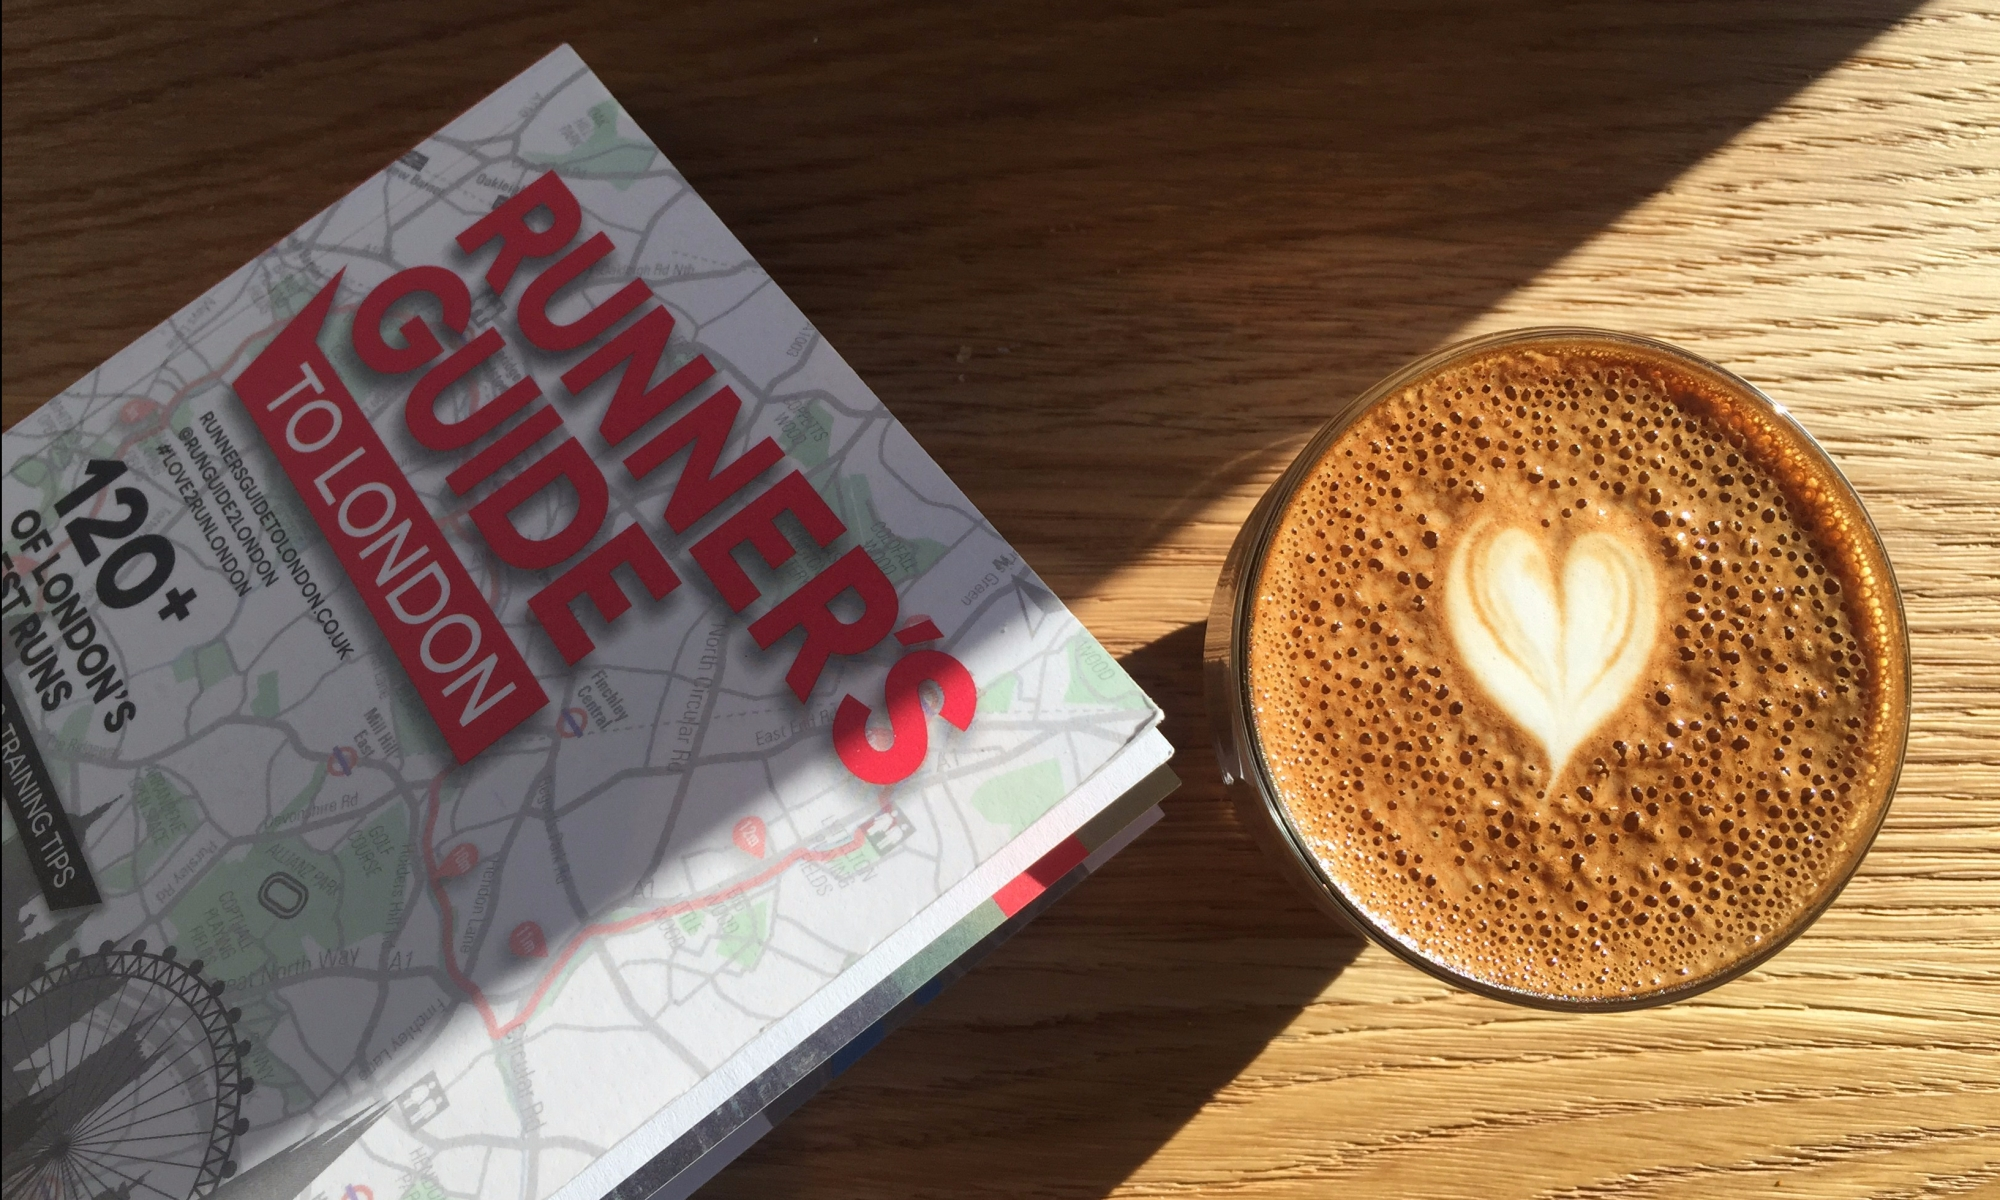 Flat White + Planning next week's runs